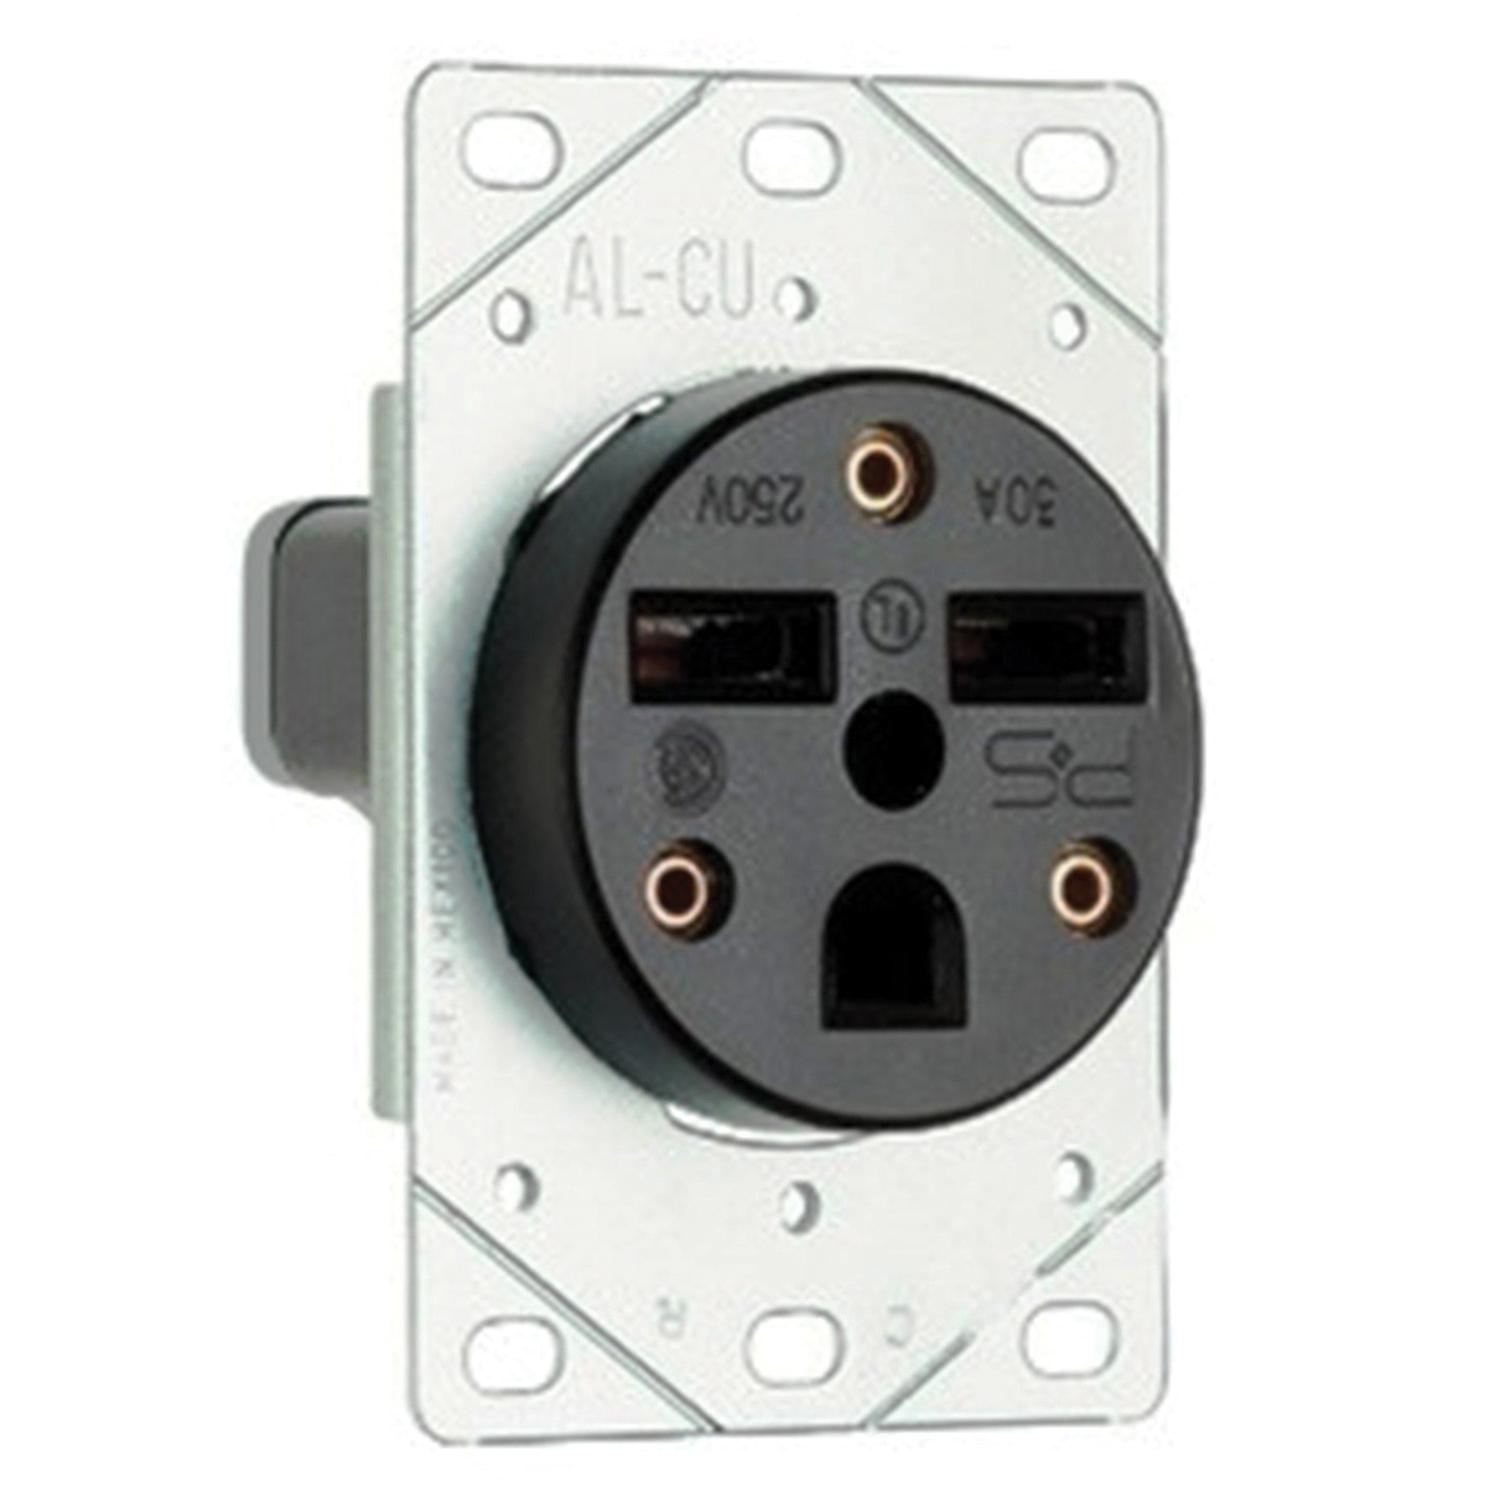 Wiring A 50 Amp Nema 6 50p Plug Car Diagrams Explained Pass Seymour 3804 Straight Blade Power Outlet Receptacle Rh Usesi Com